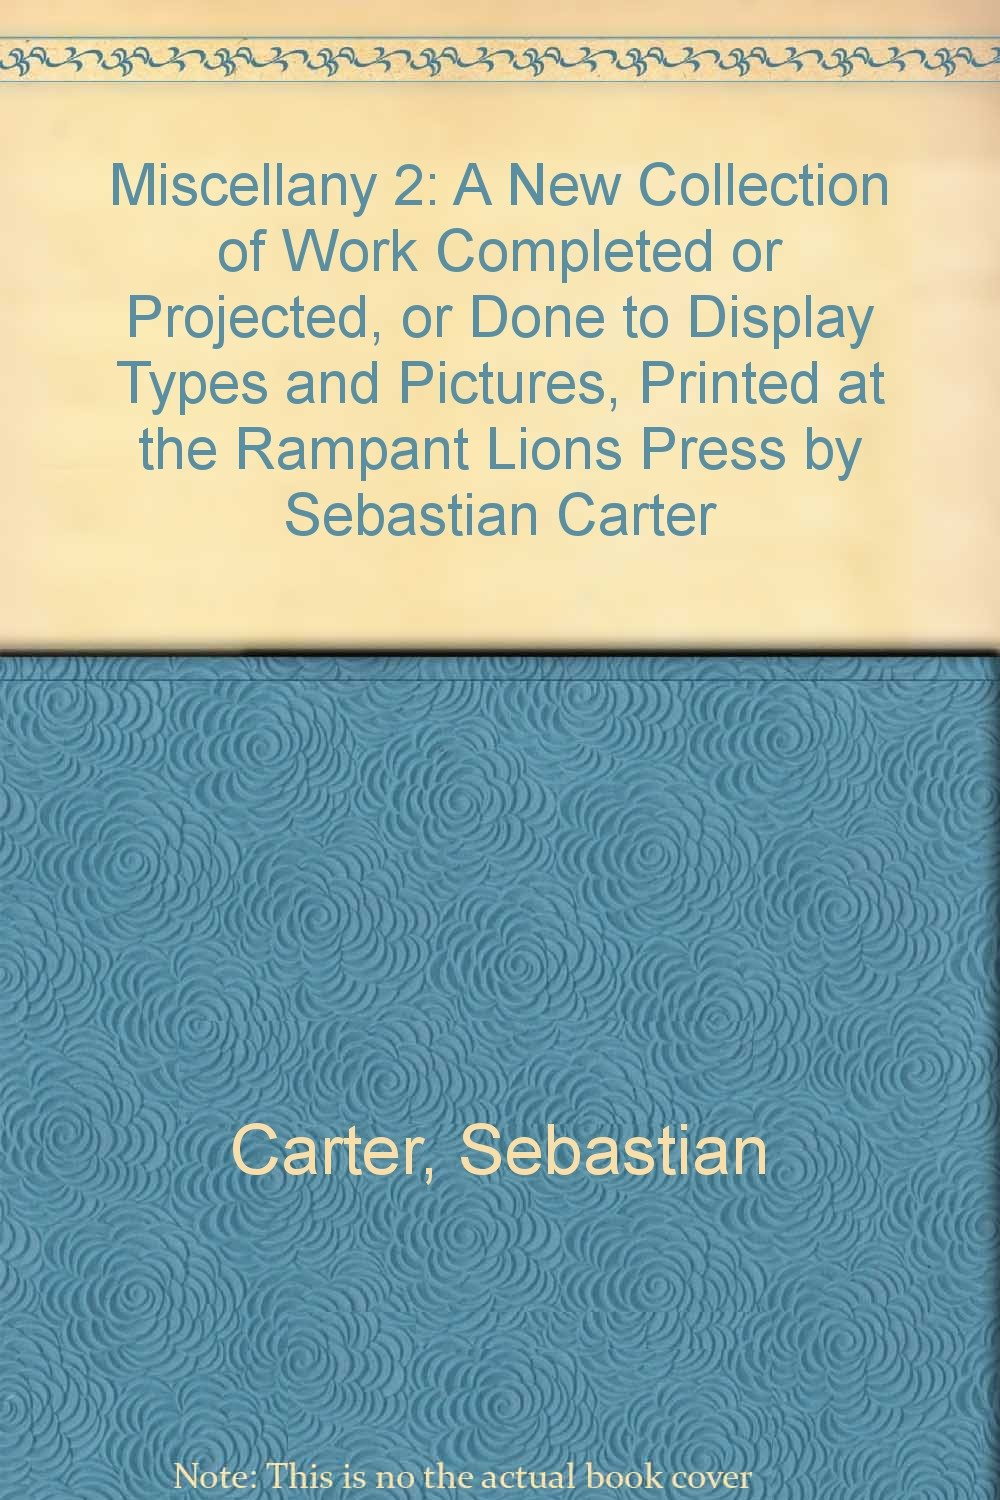 miscellany 2 a new collection of work completed or projected or done to display types and pictures printed at the rampant lions press by sebastian carter